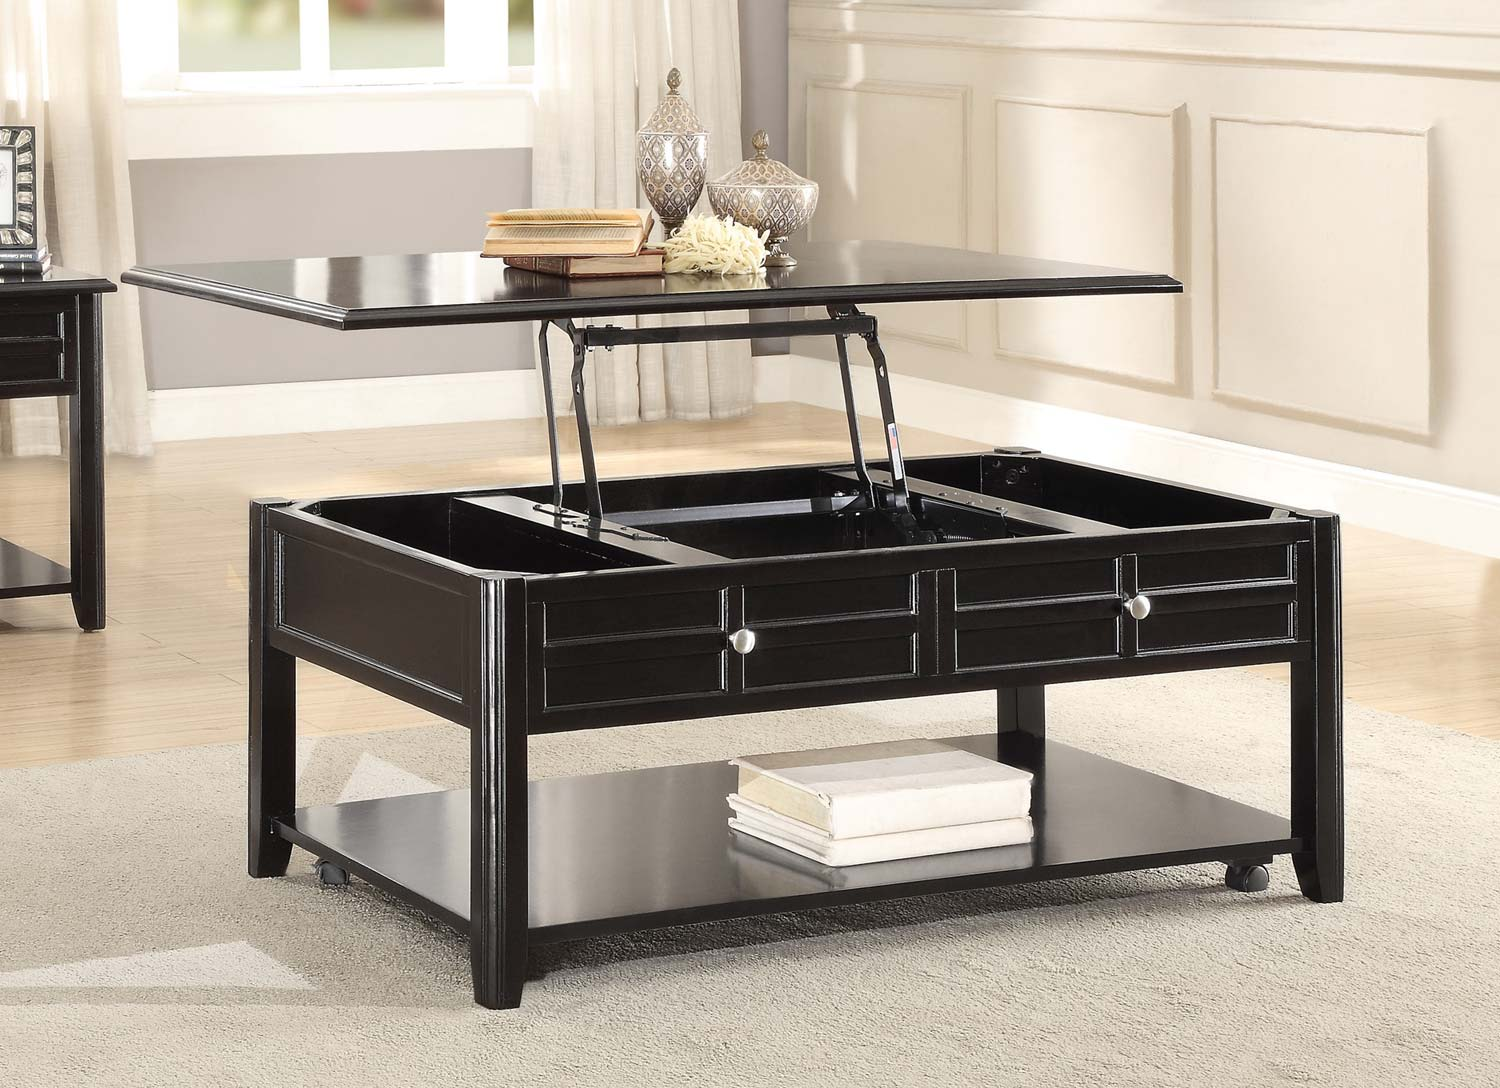 Home Elegance Carrier Cocktail Table With Lift Top On Casters